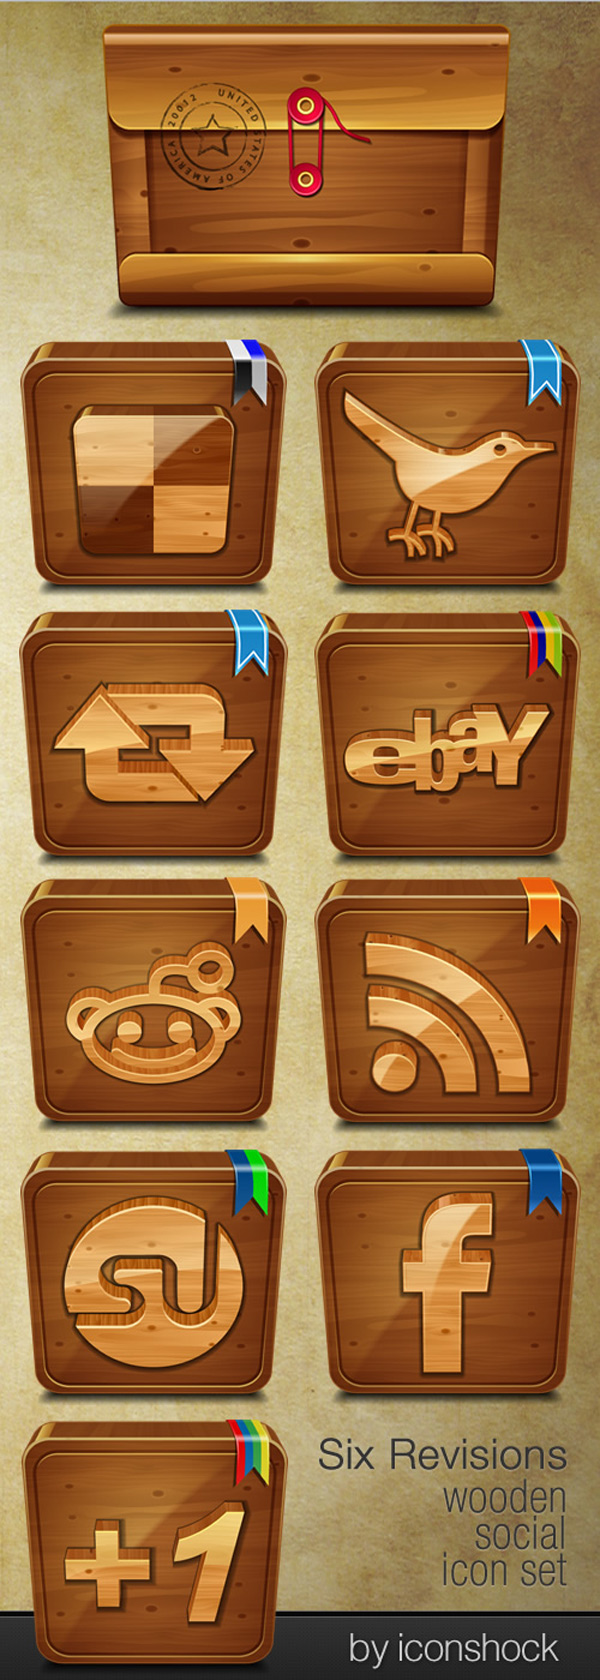 http://sixrevisions.com/freebies/icons/wooden-social-free-icon-set/